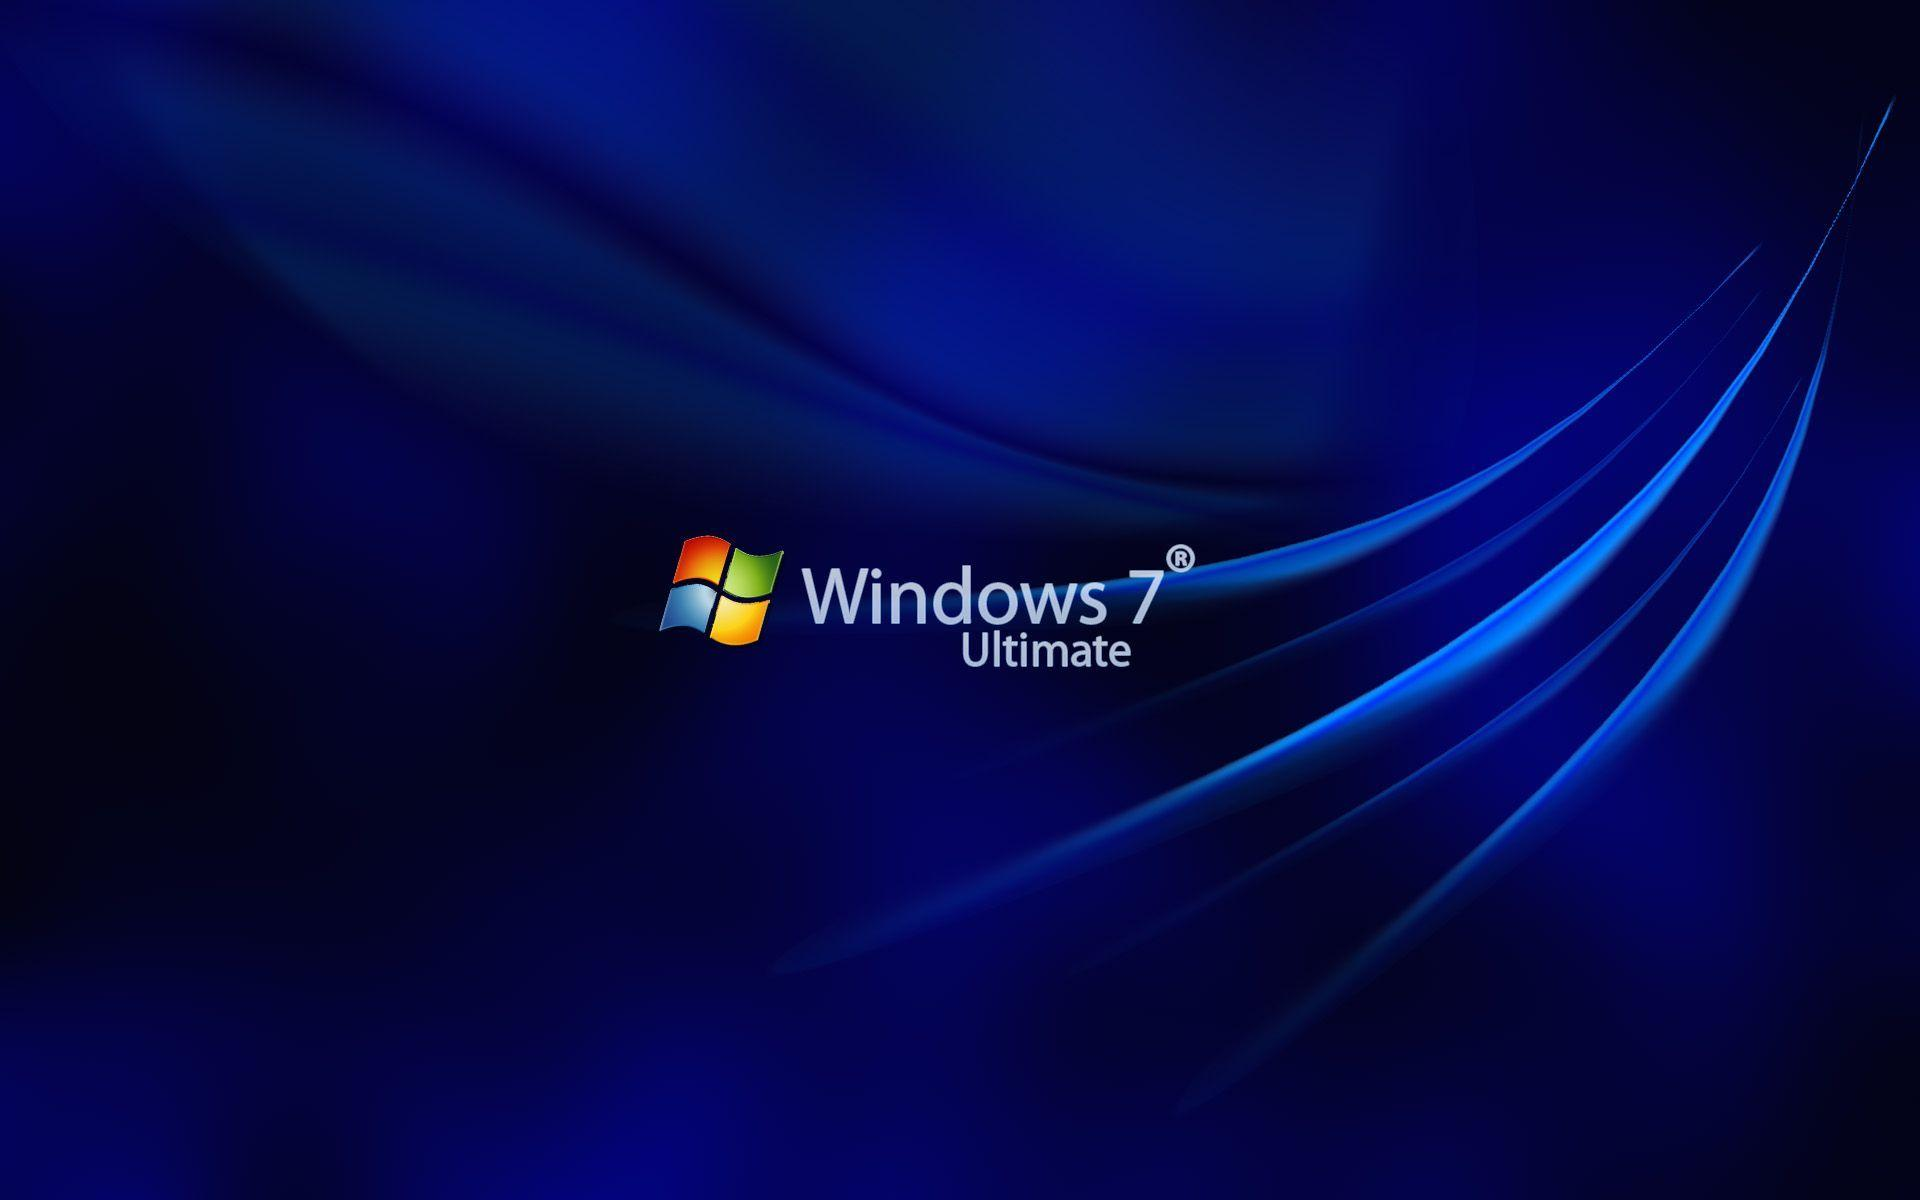 windows 7 ultimate desktop backgrounds wallpaper cave